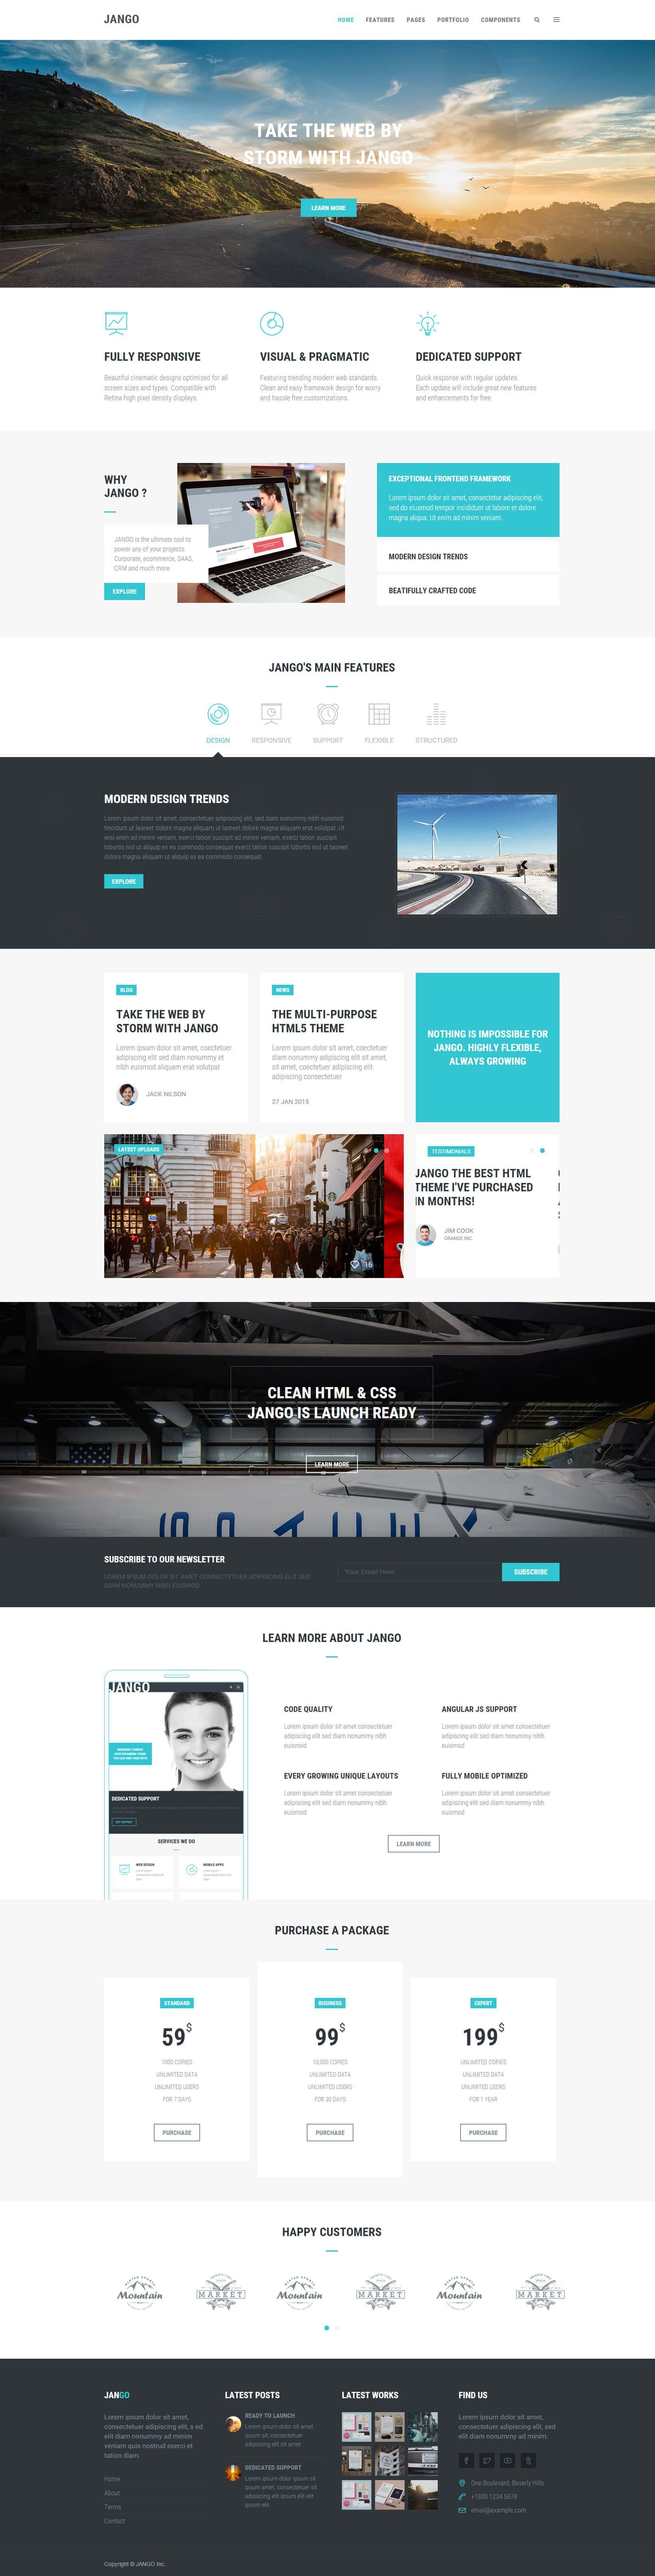 Jango Highly Flexible Component Based Html5 Template By Themehats